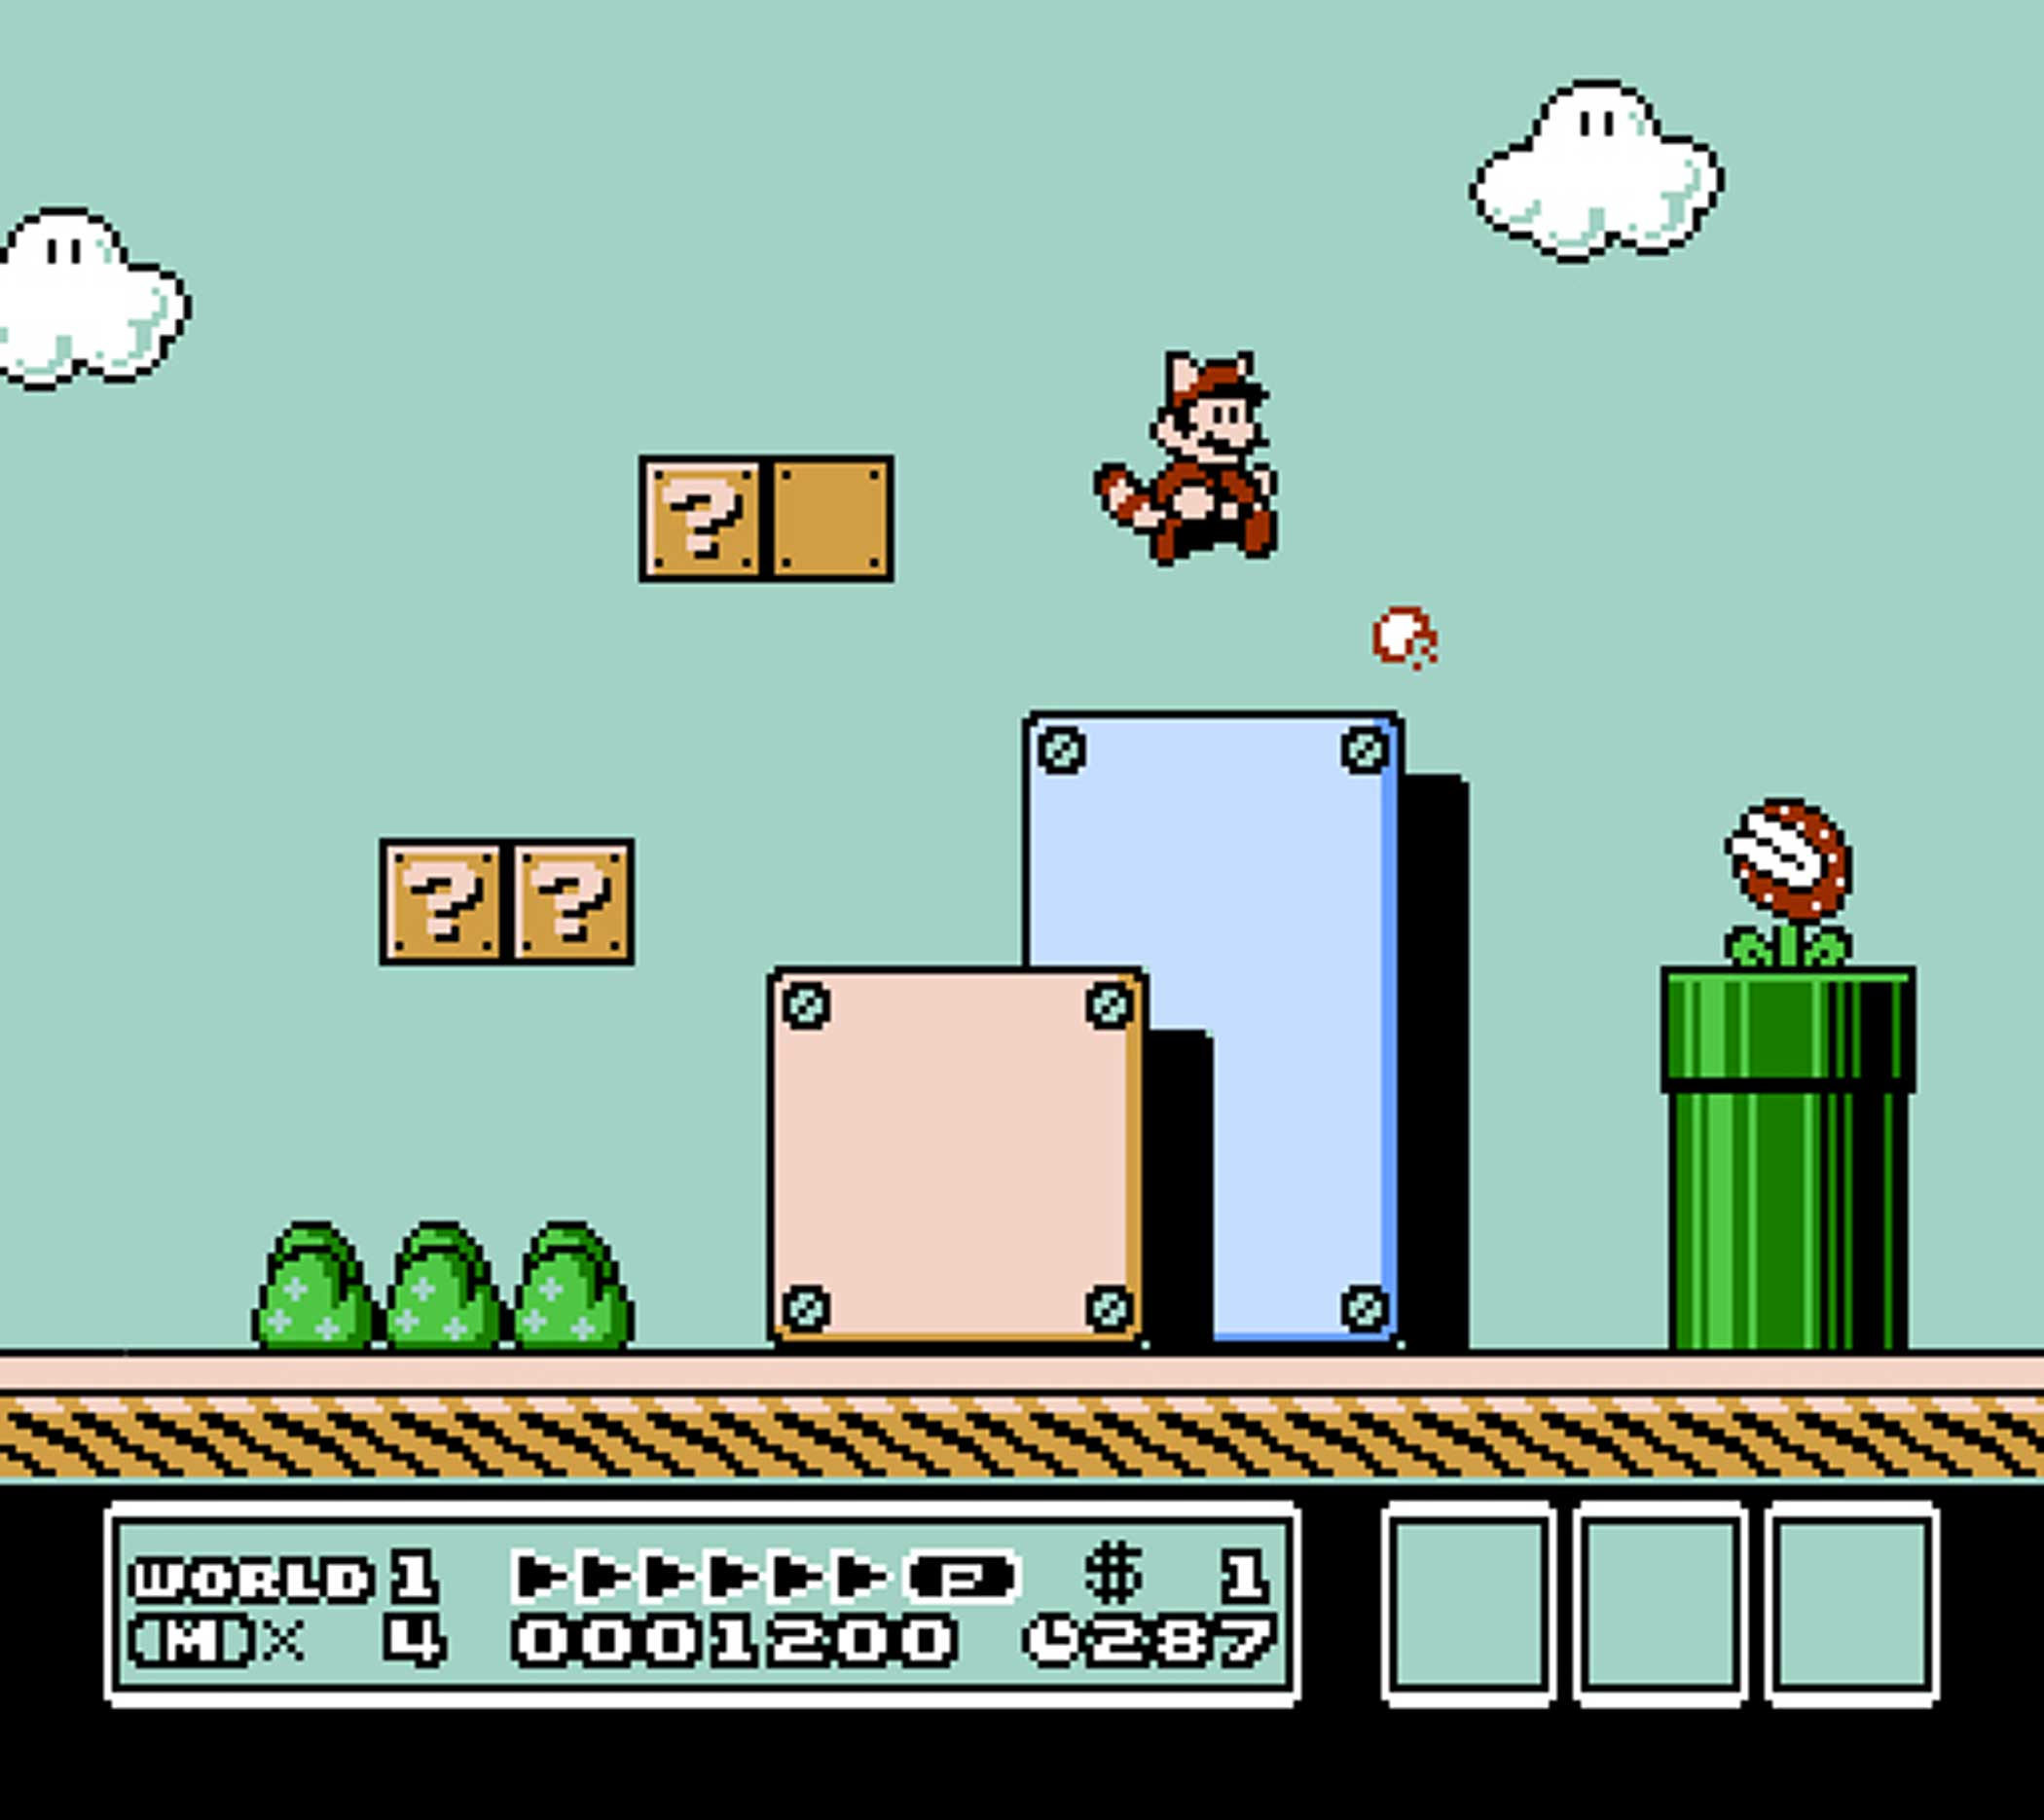 1990: Super Mario Bros. 3                                                              Originally released in Japan in 1988, Super Mario Bros. 3 is lauded by some as the series' finest installment. It's also the entry known for introducing iconic series power-ups like the Super Leaf, Tanooki Suit and Goomba's Shoe.